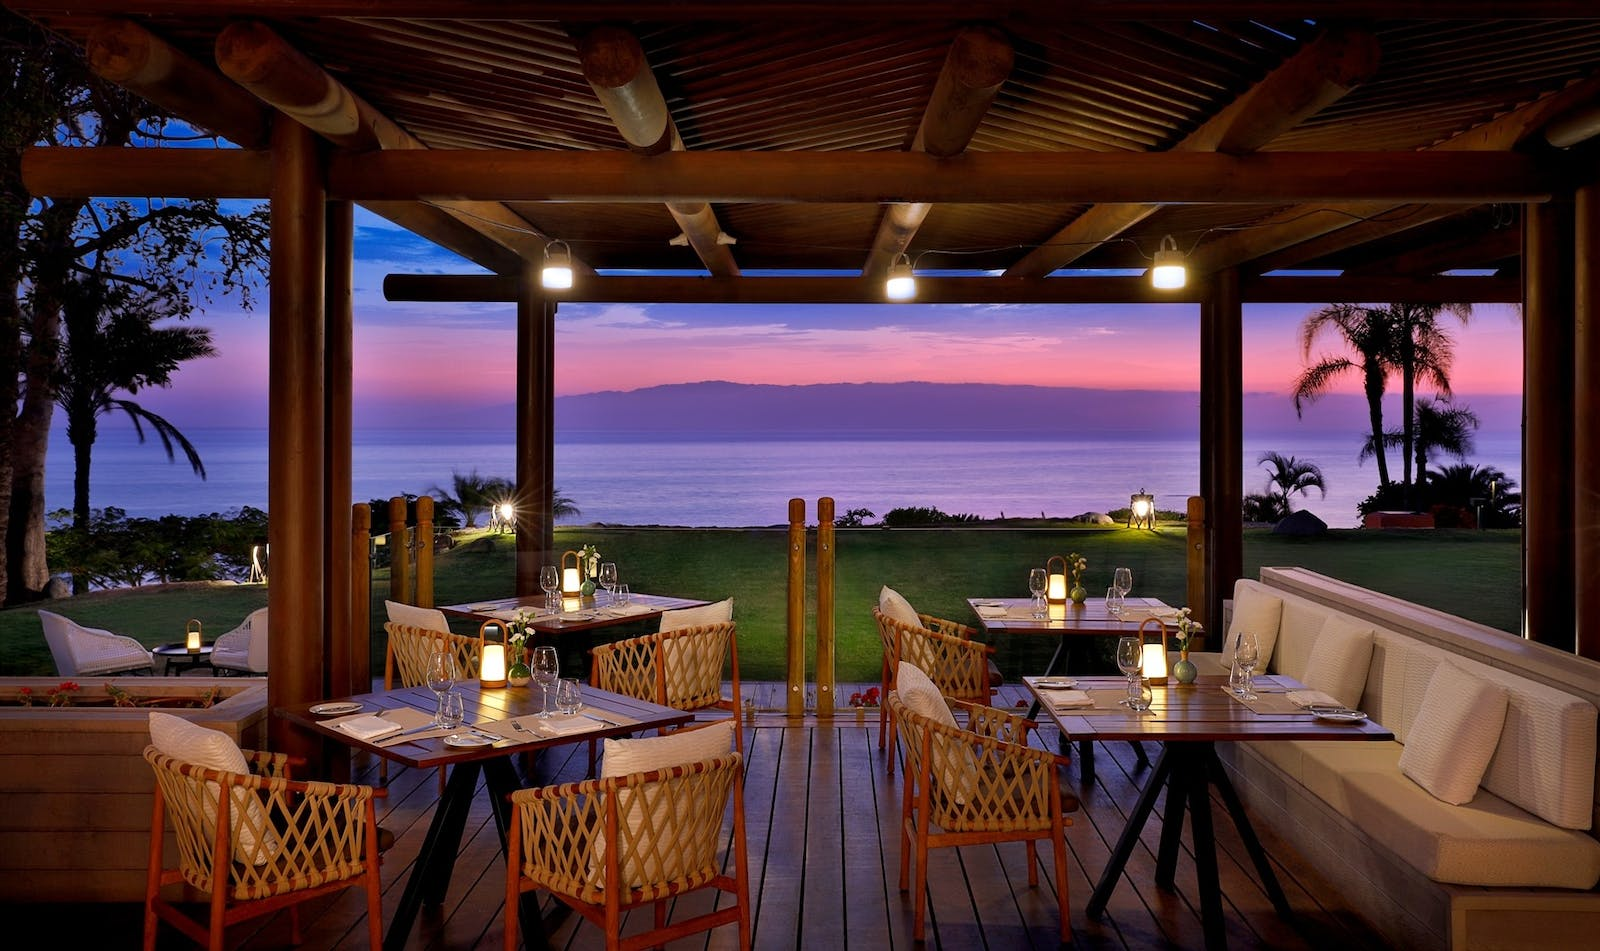 El Mirador Terrace at Night, The Ritz-Carlton, Abama, Tenerife